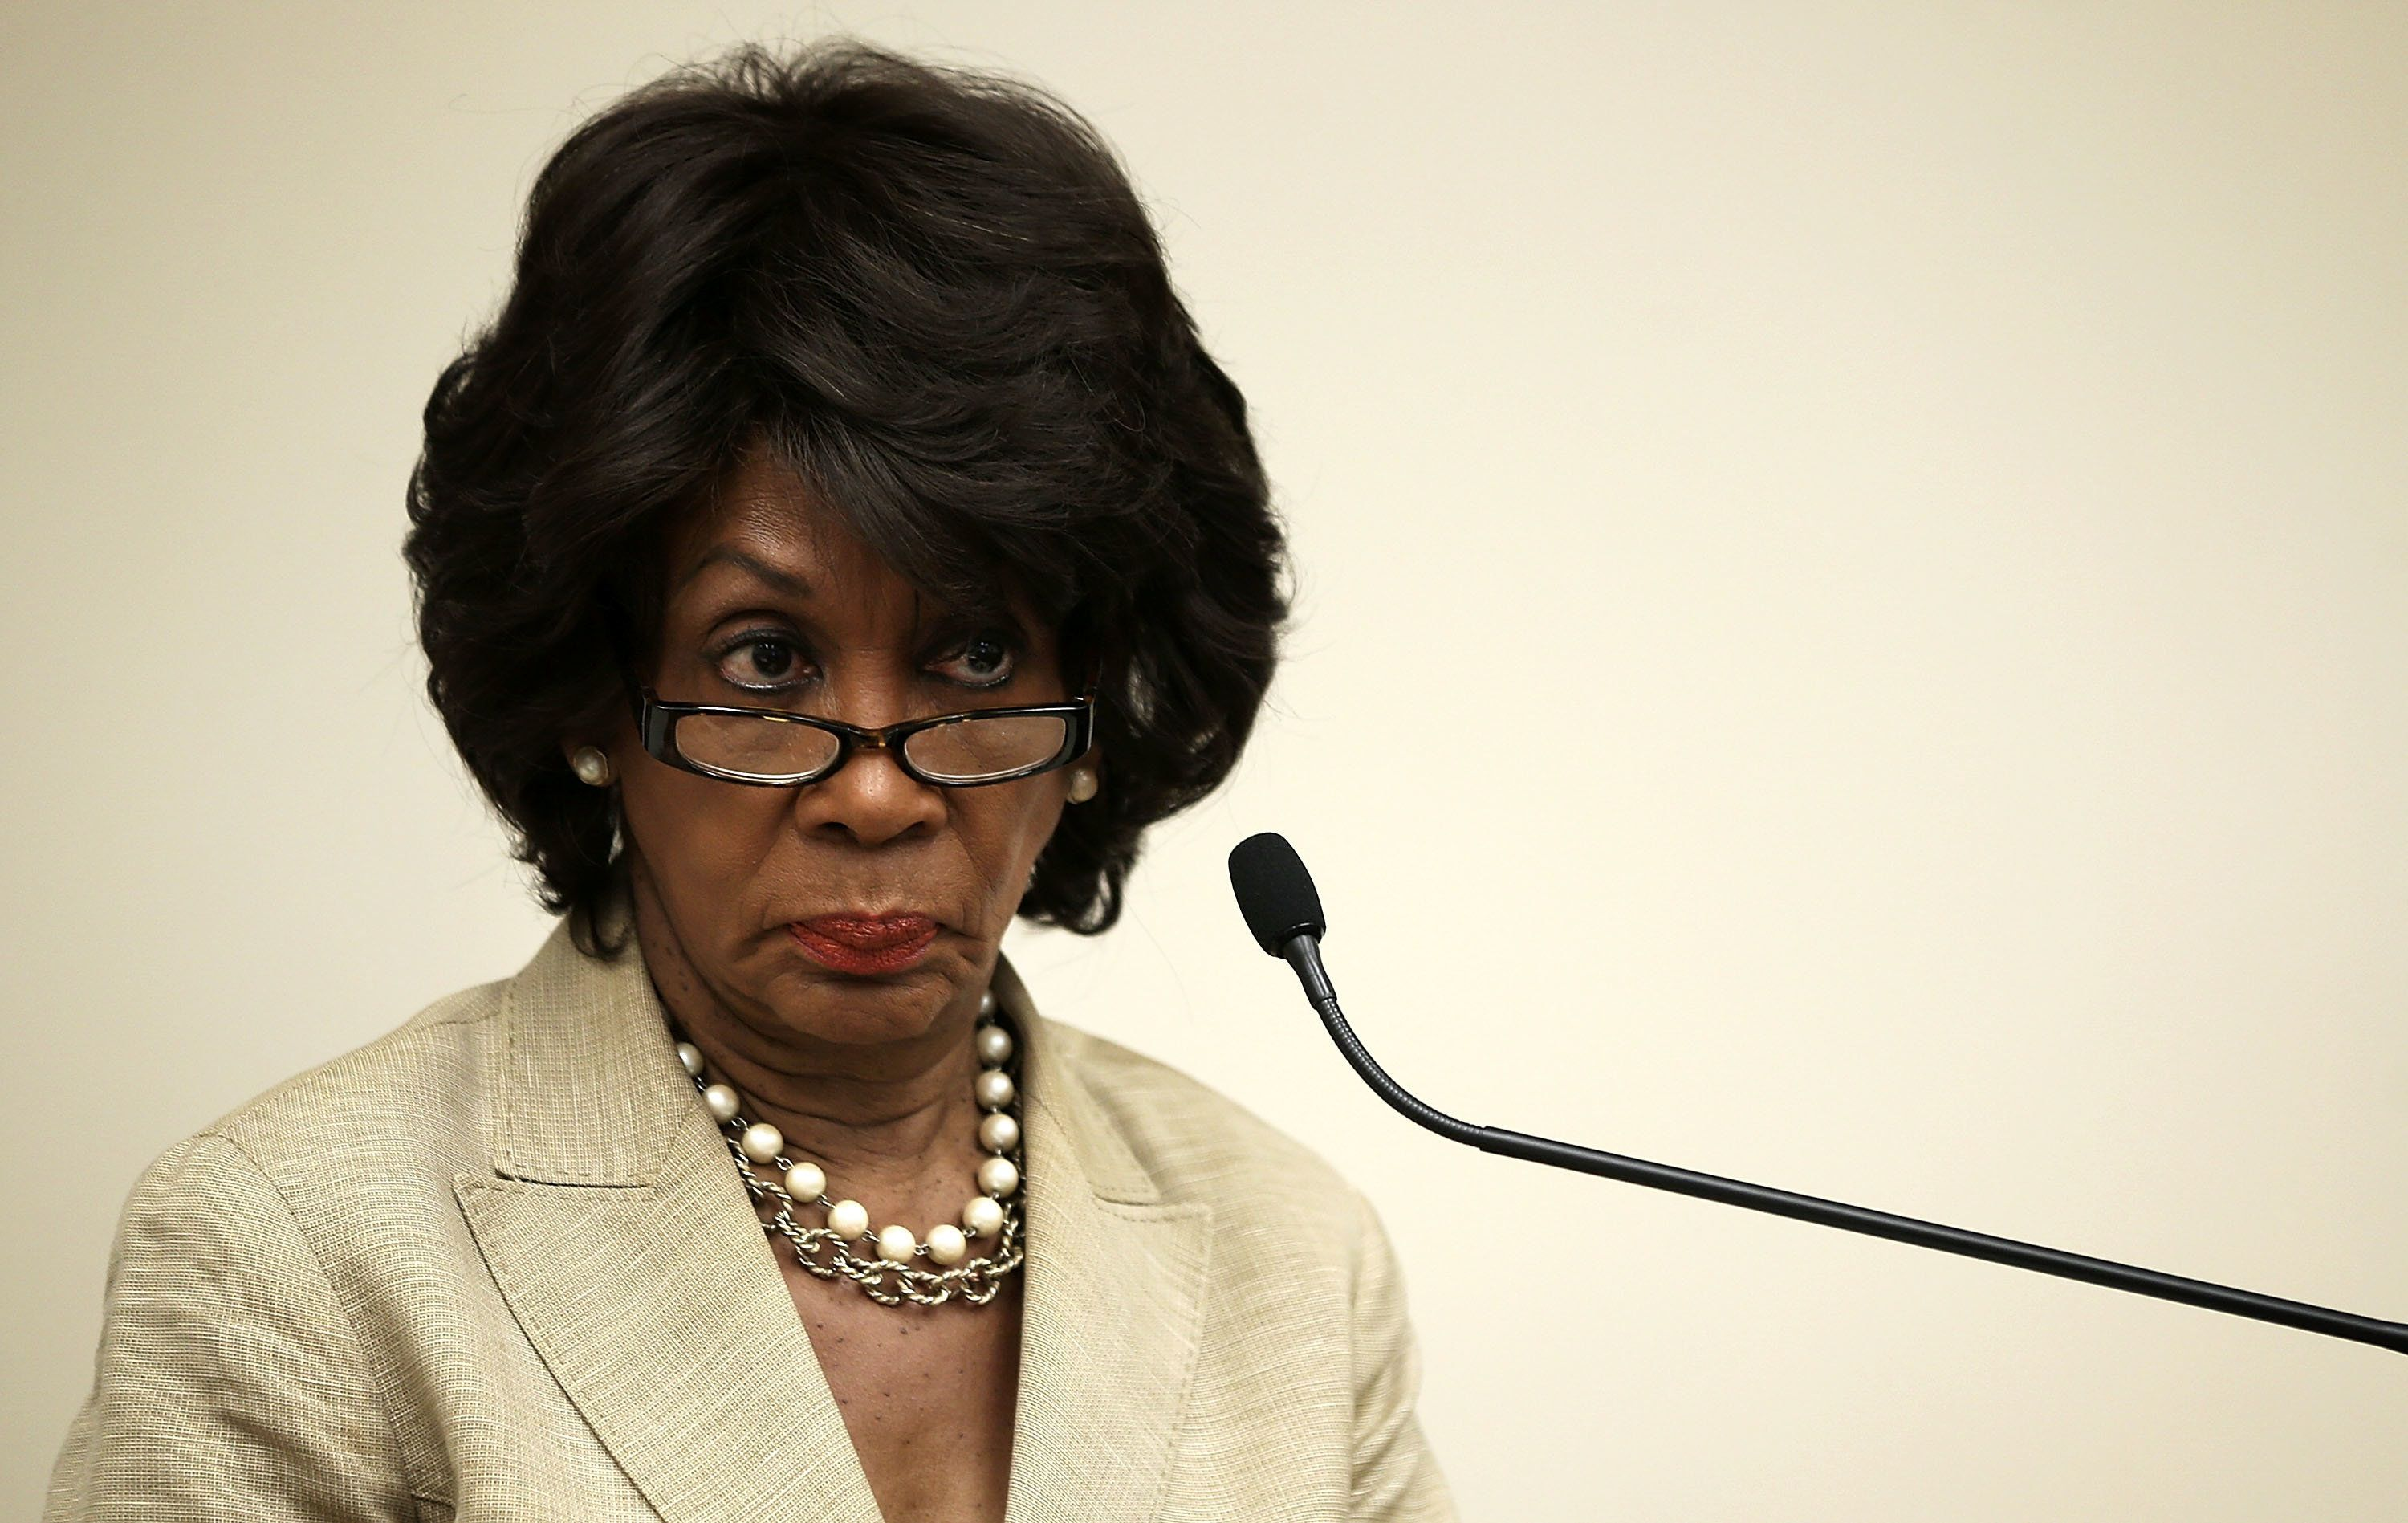 """<span class='image-component__caption' itemprop=""""caption"""">Rep. Maxine Waters (D-Calif.), pictured, along with Sens. Sherrod Brown (D-Ohio) and Elizabeth Warren (D-Mass.), have criticized HUD'sproposal</span>"""